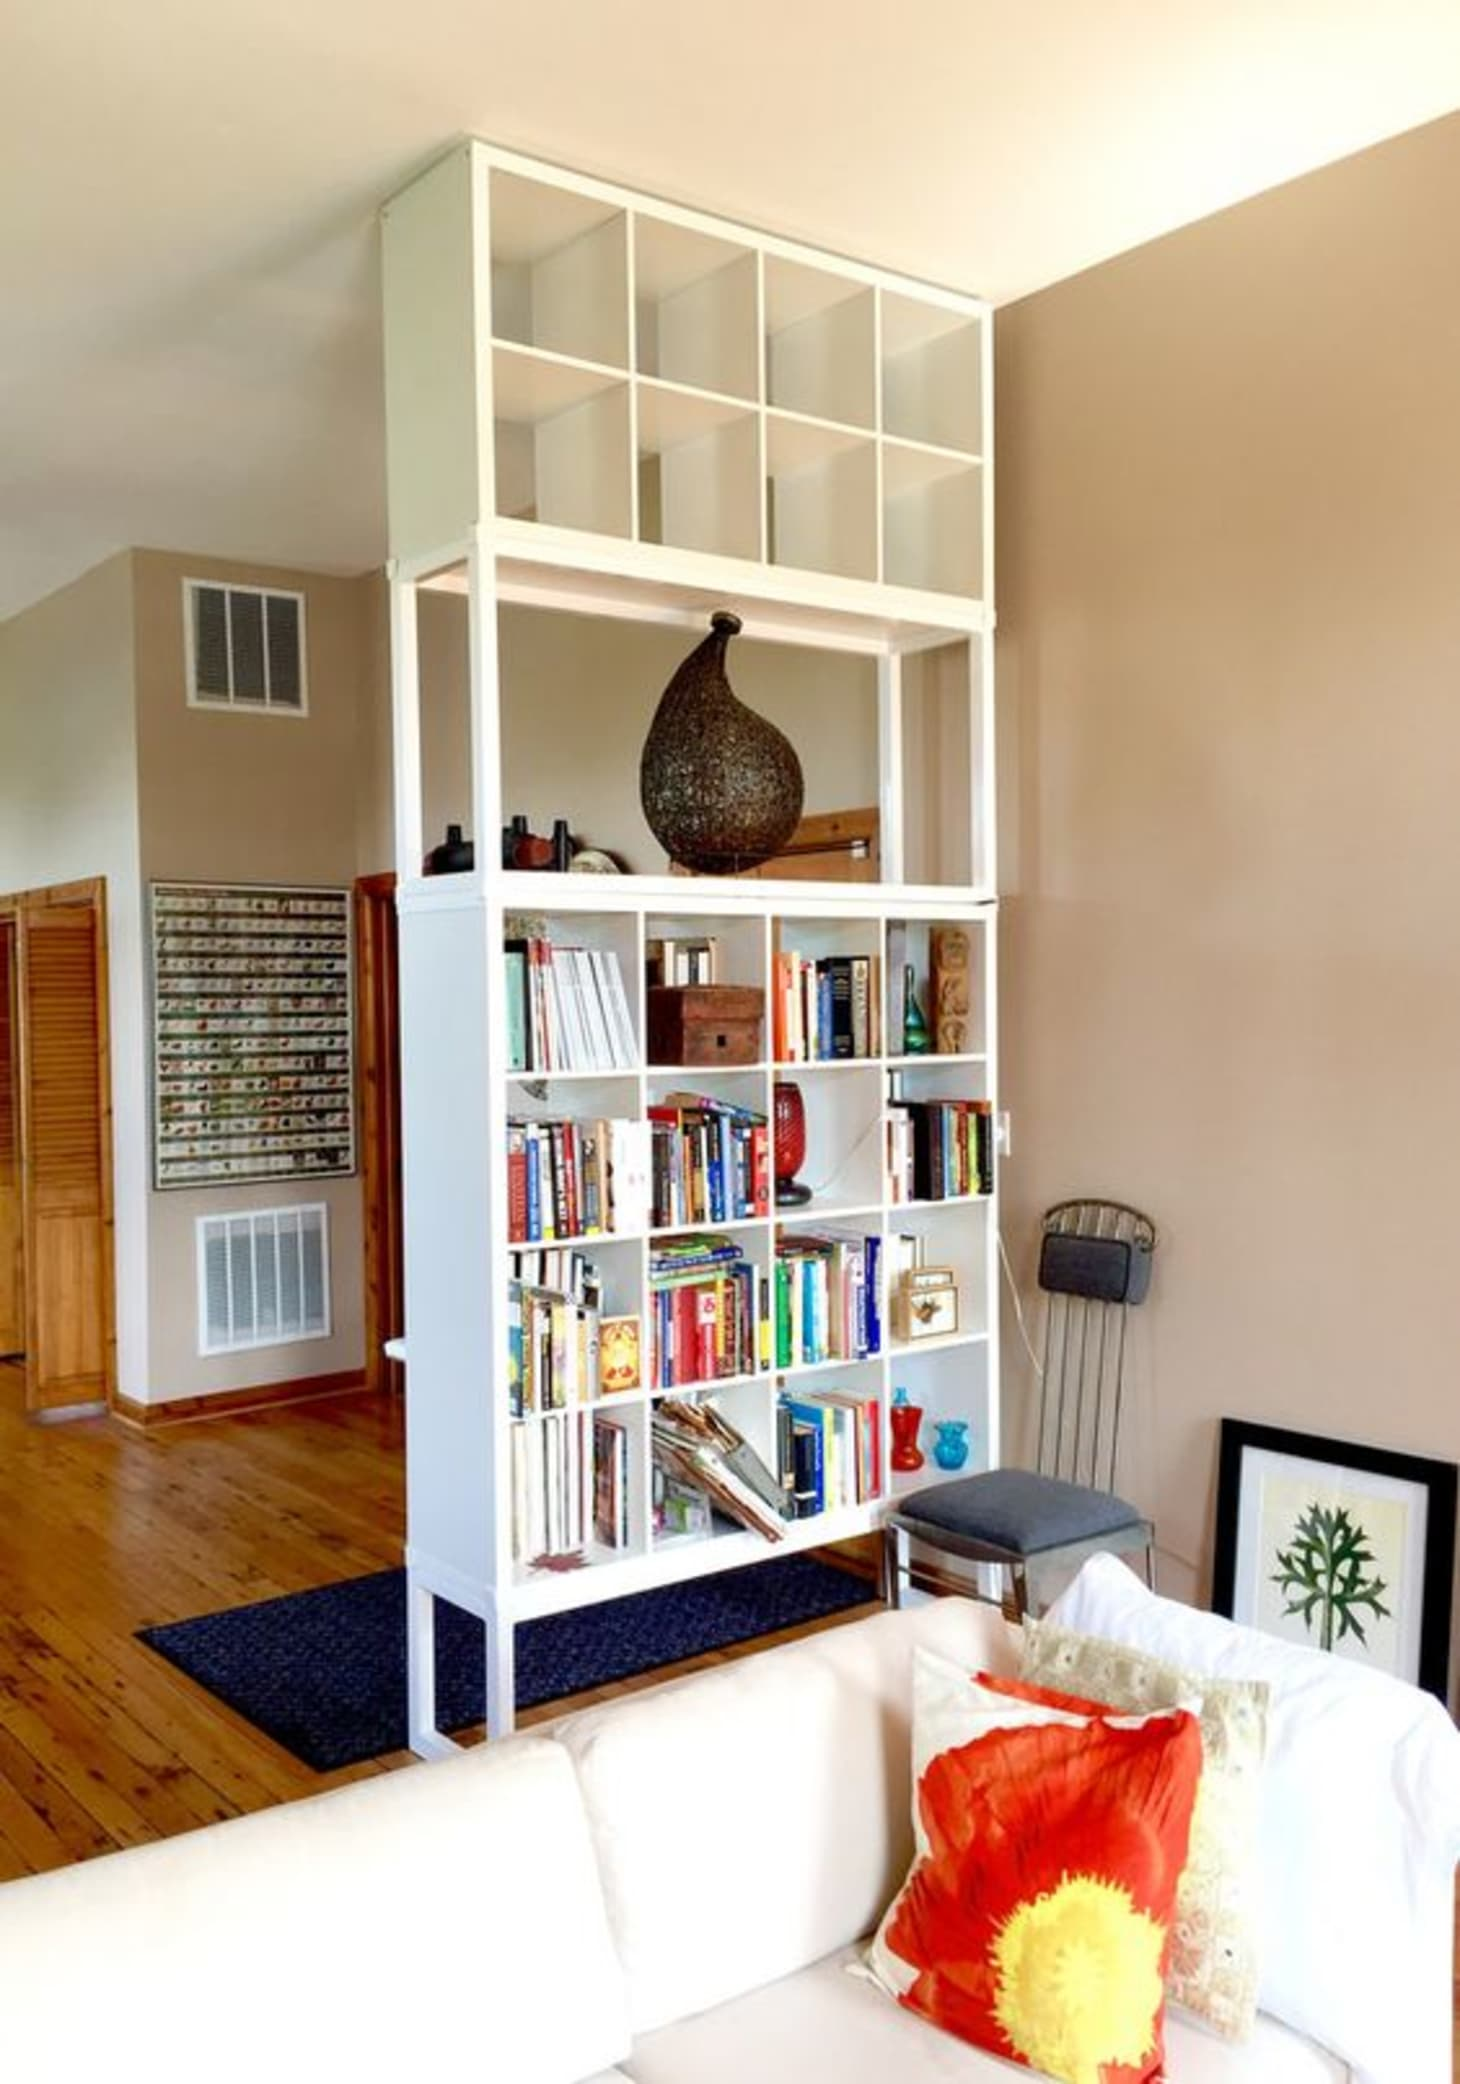 15 Super Smart Ways To Use The Ikea Kallax Bookcase Apartment Therapy